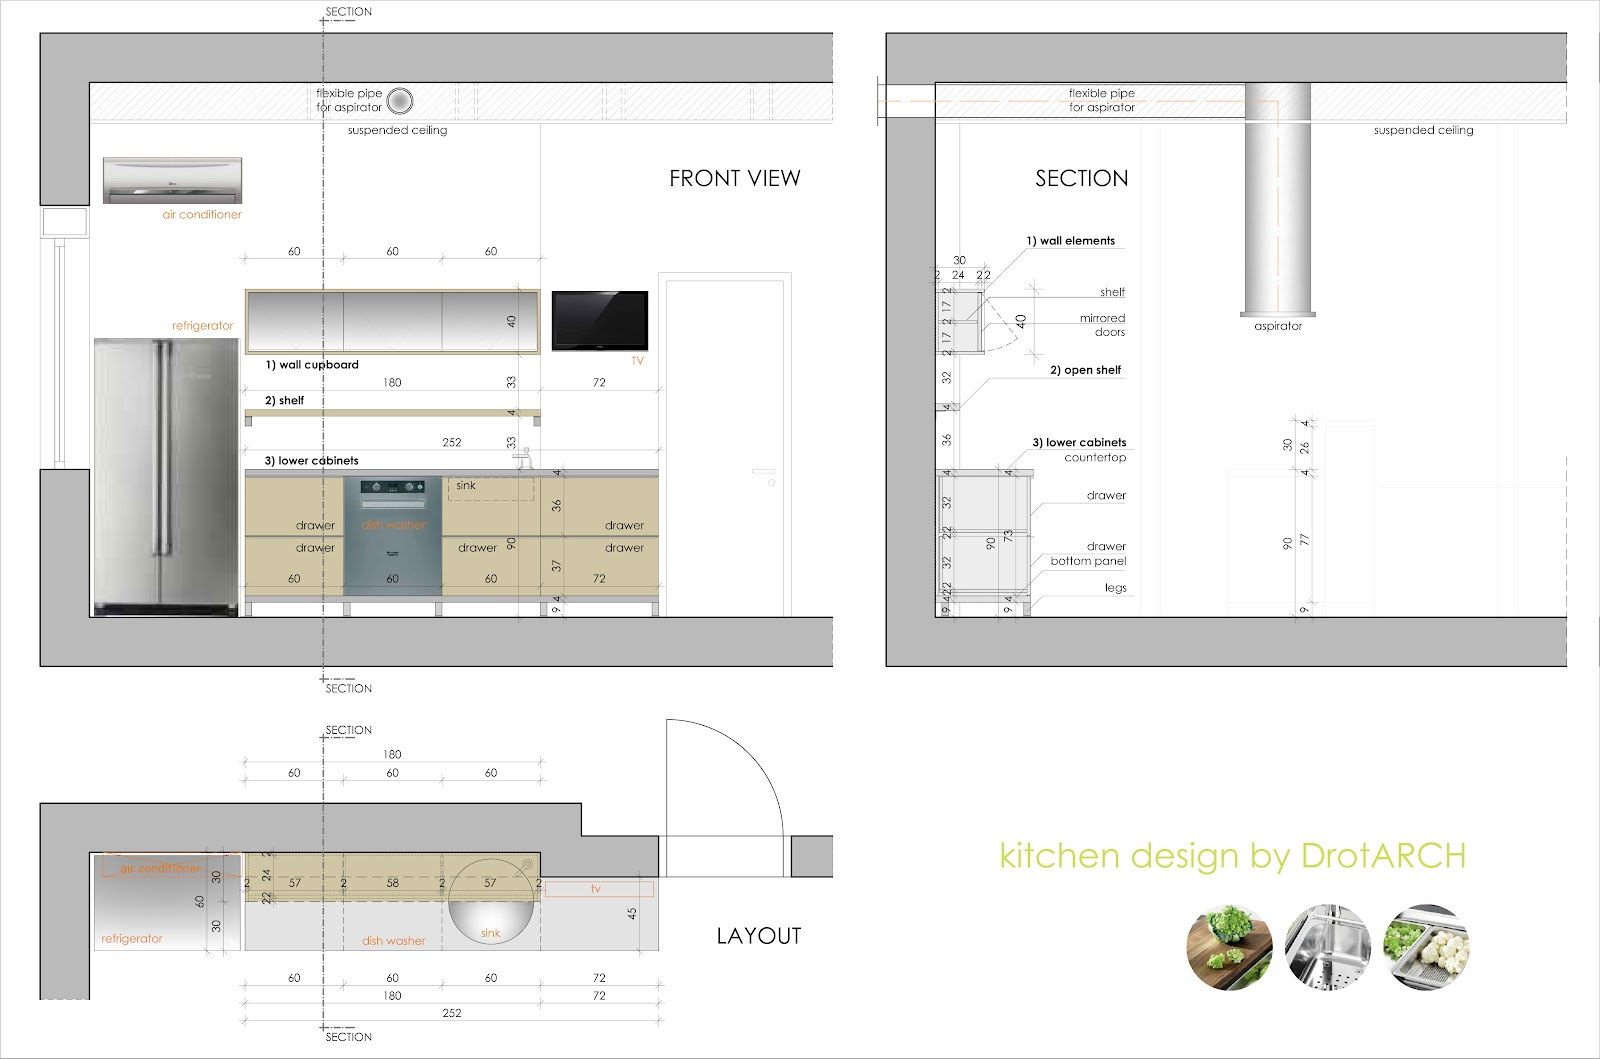 Kitchen design drawings one of the best home design for Kitchen design details